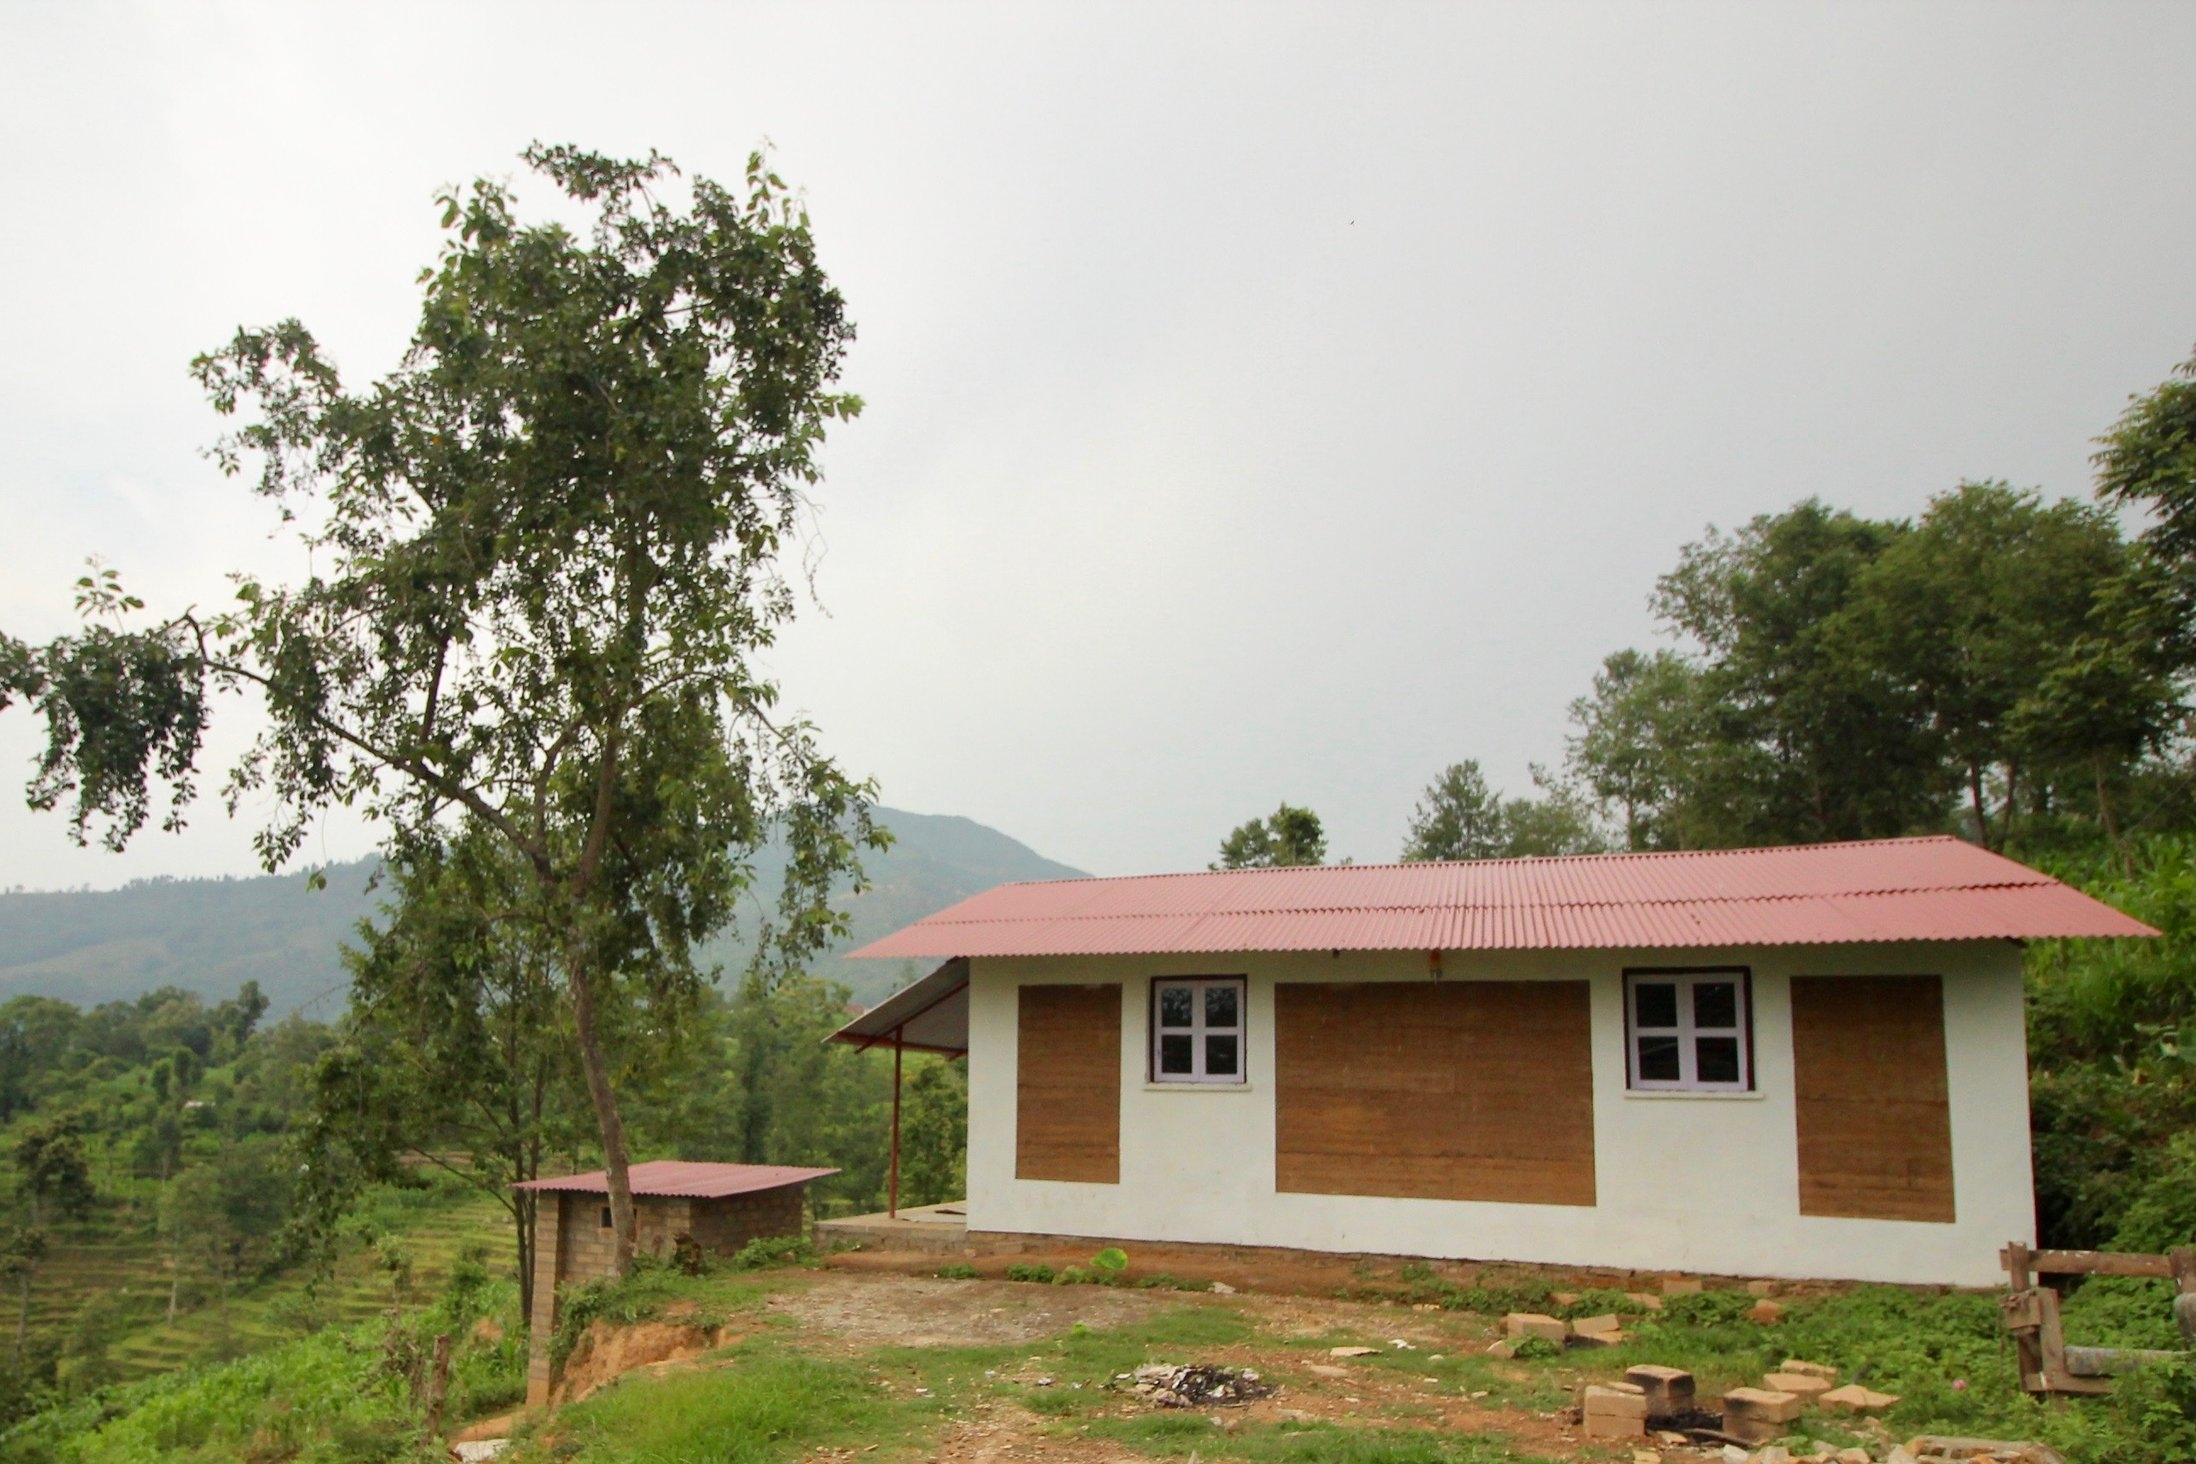 The Women's Co-op - Completed May 2017